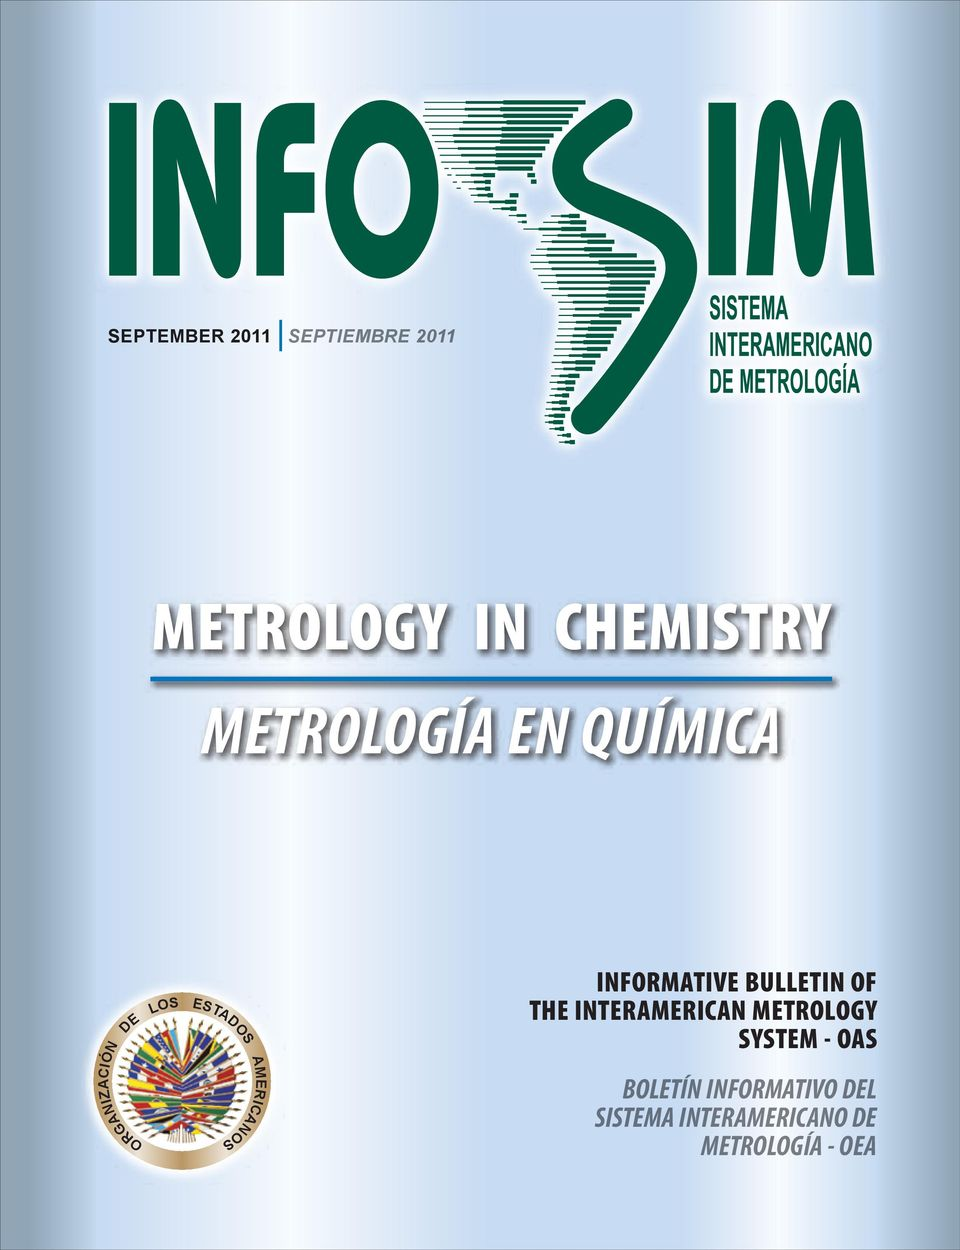 THE INTERAMERICAN METROLOGY SYSTEM - OAS ORGANIZACIÓN